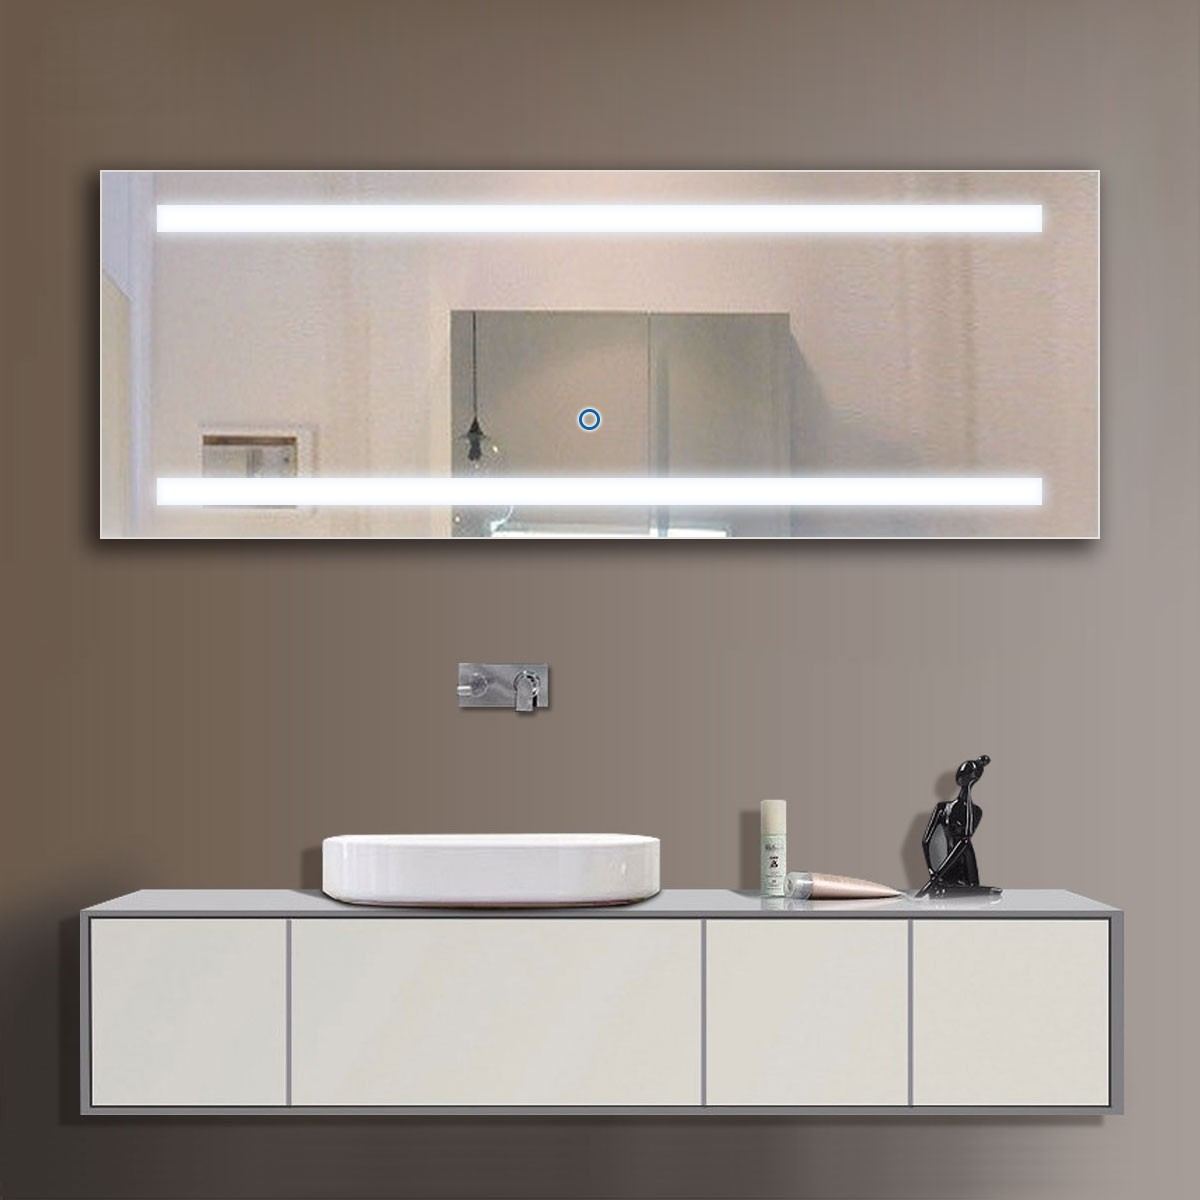 65 x 24 In LED Bathroom Mirror with Touch Button (DK-OD-C230)